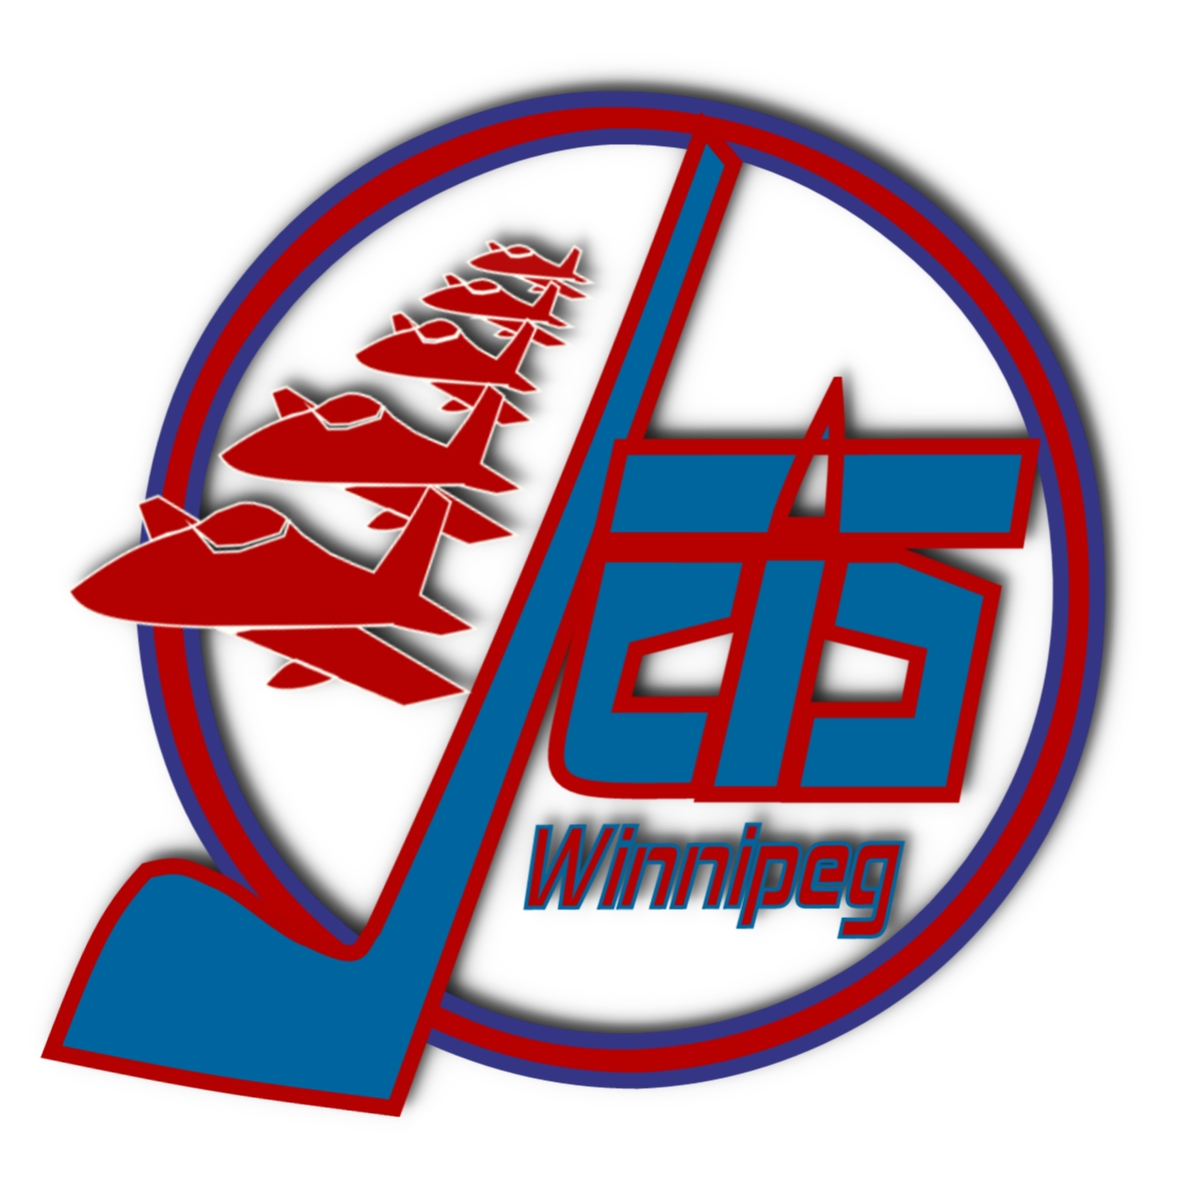 Logo Design by Joseph calunsag Cagaanan - Entry No. 33 in the Logo Design Contest Winnipeg Jets Logo Design Contest.